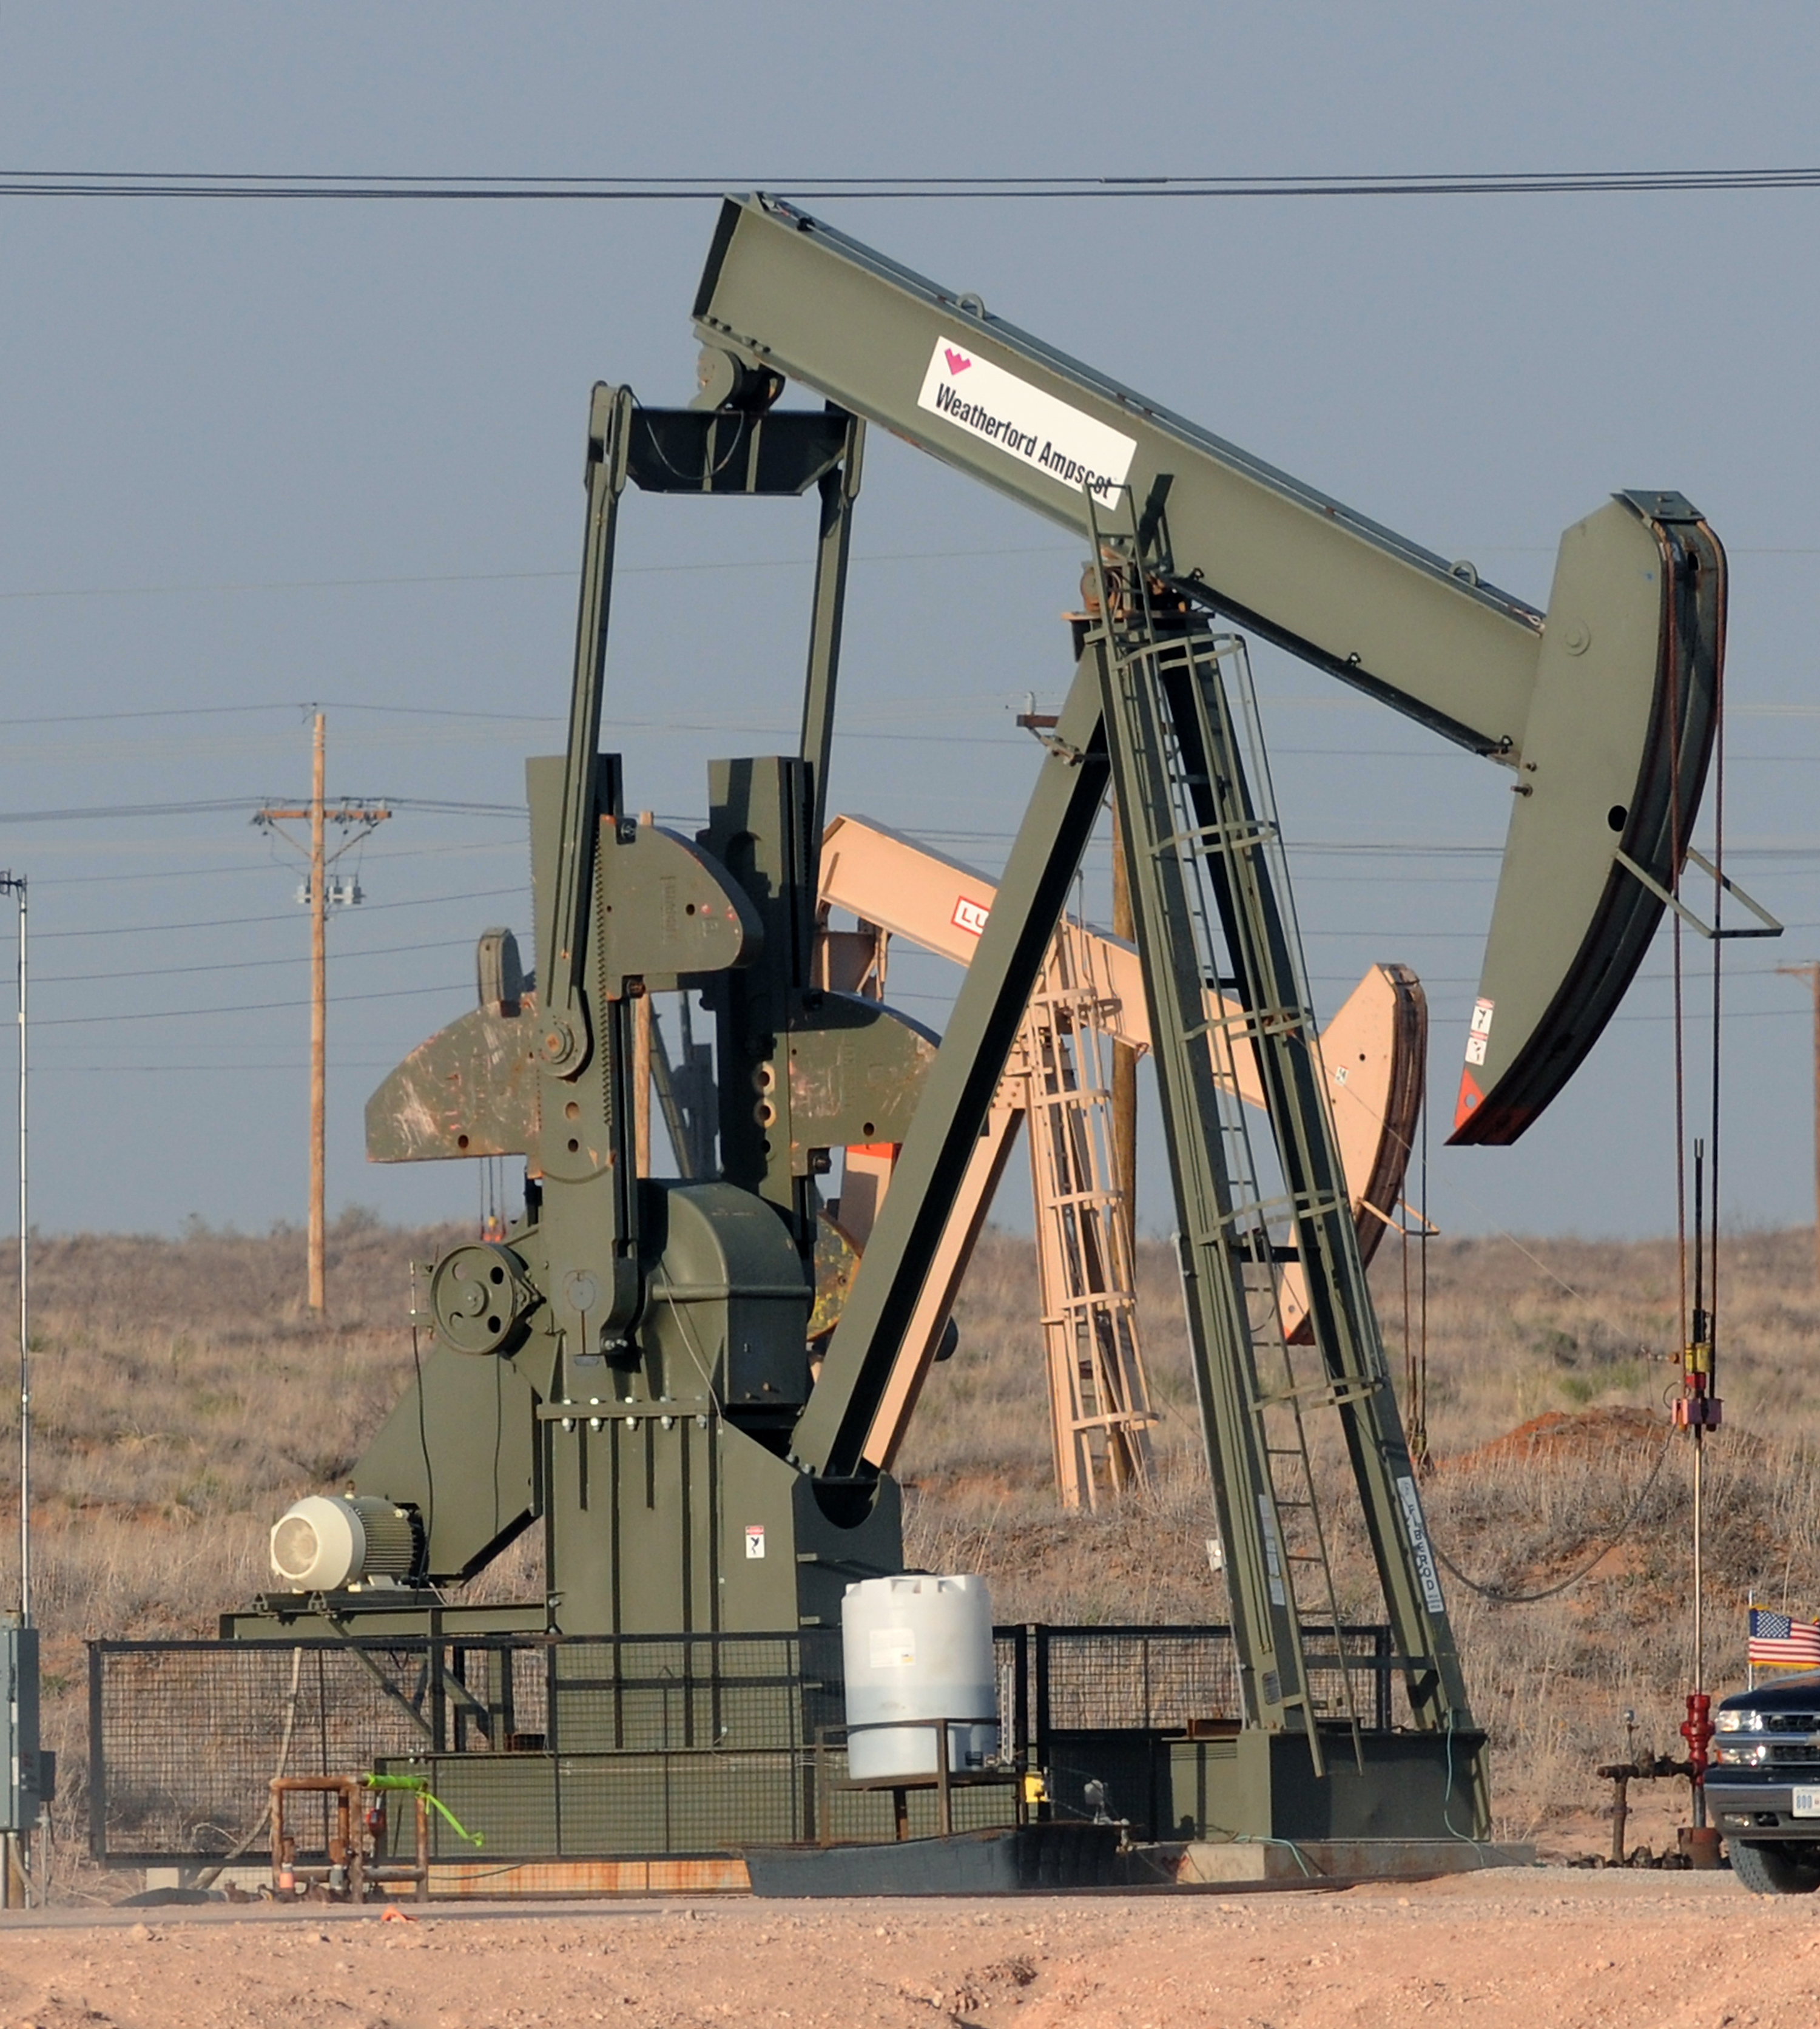 Oil production in Permian booming, but uncertainty surfaces